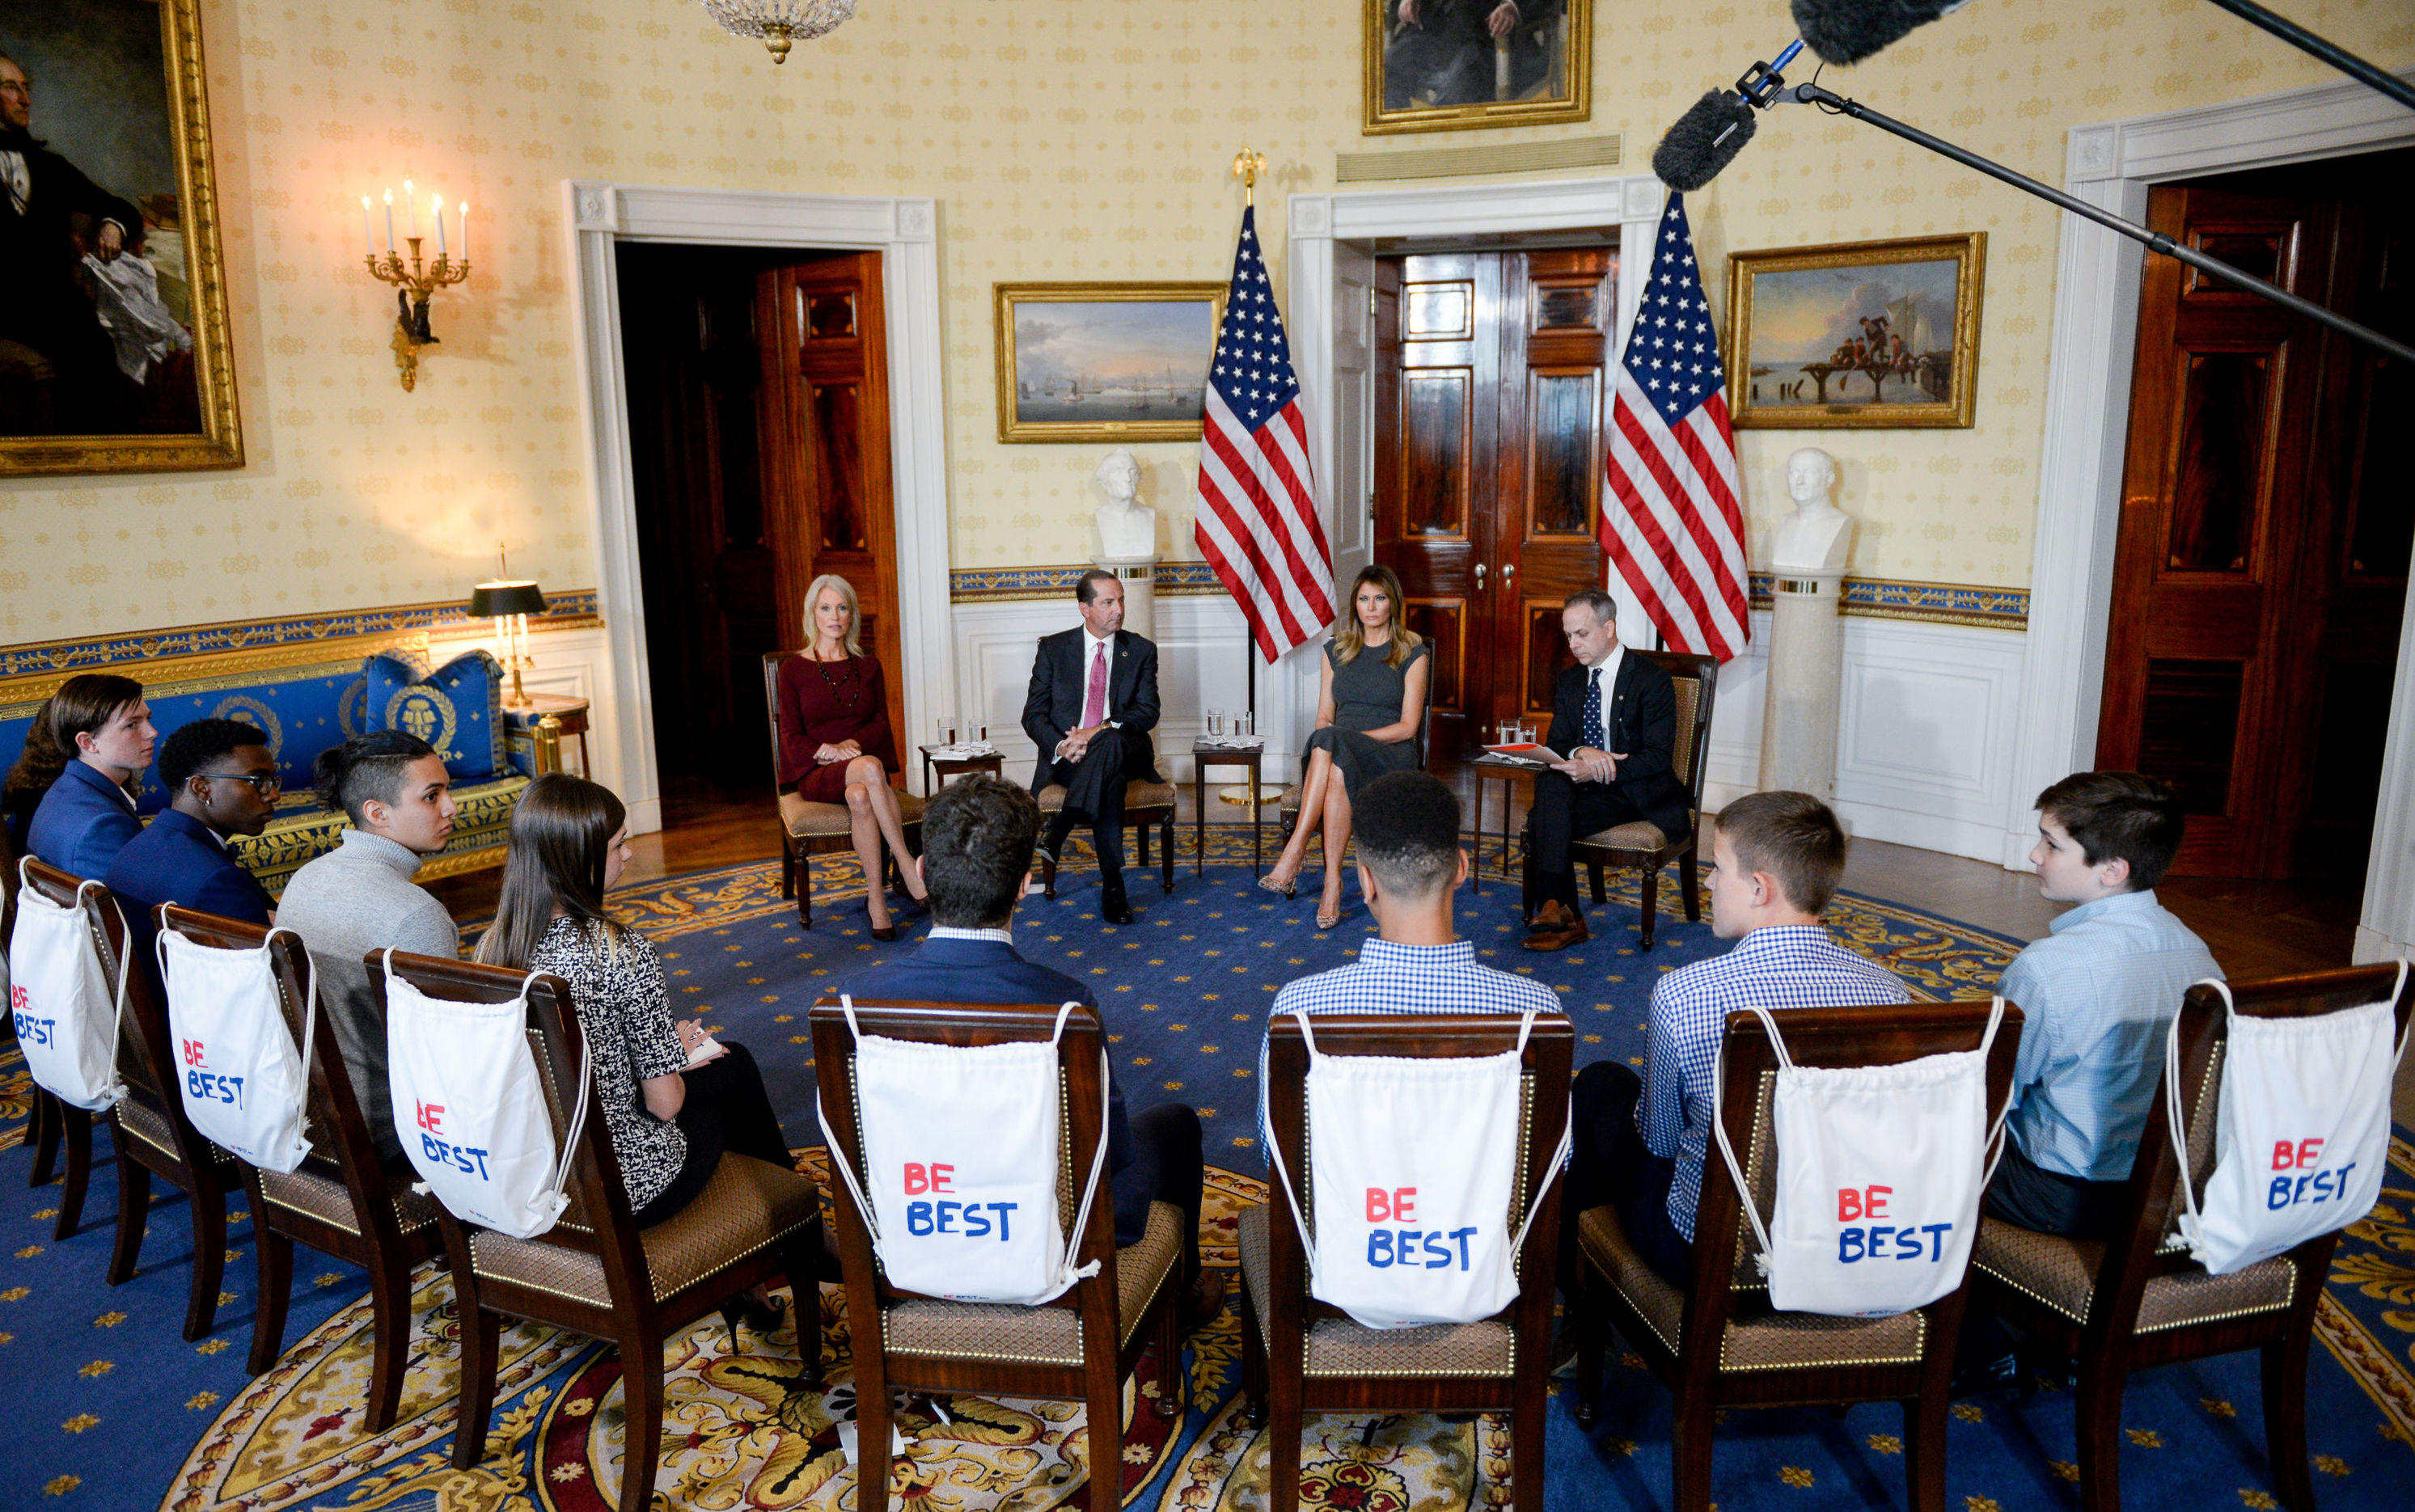 U.S. first lady Melania Trump, joined by U.S. Health and Human Services Secretary Alex Azar, White House advisor Kellyanne Conway and Eric Asche, chief marketing officer at Truth Initiative, meets with teens on their experience with vaping as part of her Be Best initiative at the White House in Washington, U.S. October 9, 2019